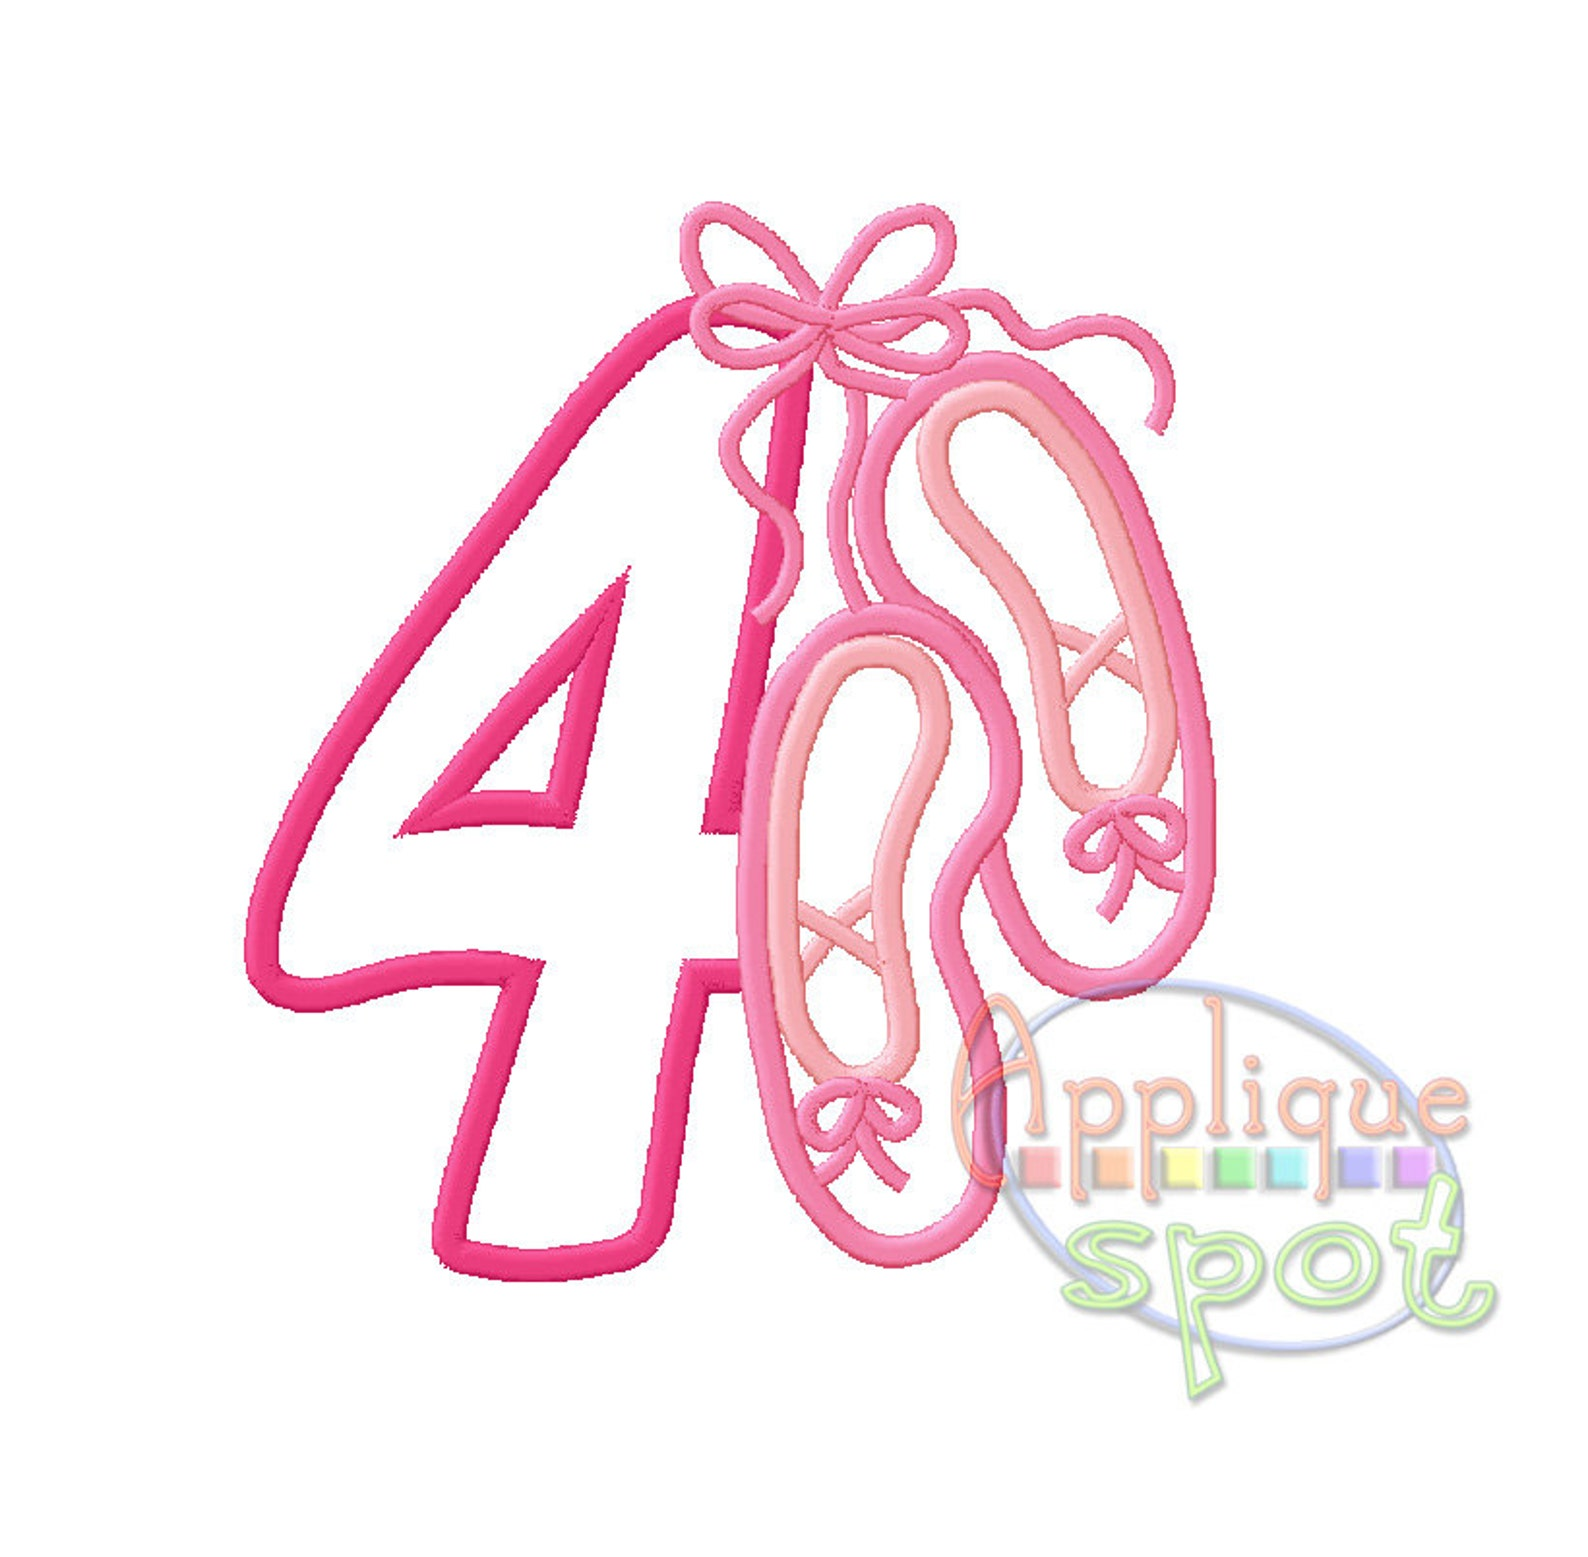 ballet fourth 4th birthday baby girl 4 - 4x4 5x7 6x10 applique design embroidery machine -instant download file